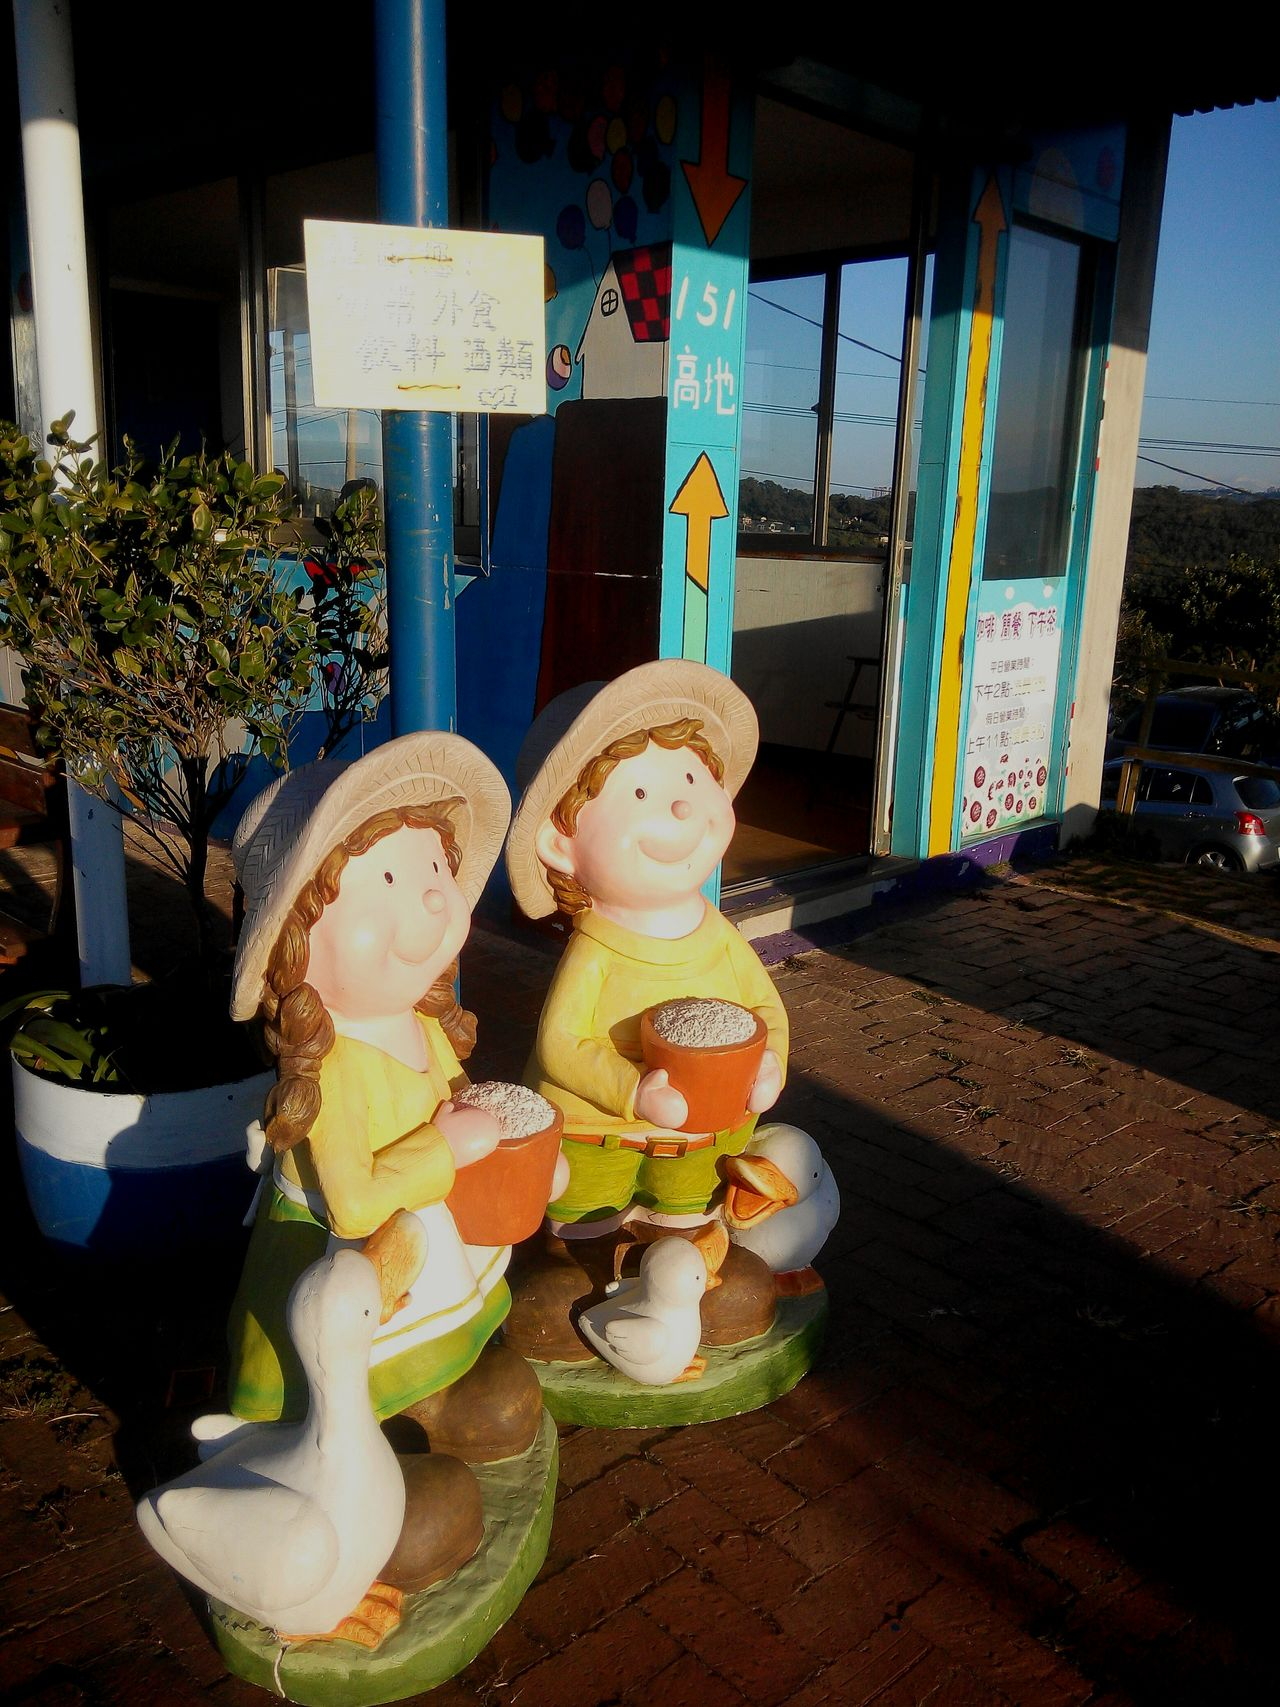 Art And Craft Traveling Home For The Holidays Figurine  Outdoors Sunlight And Shadows